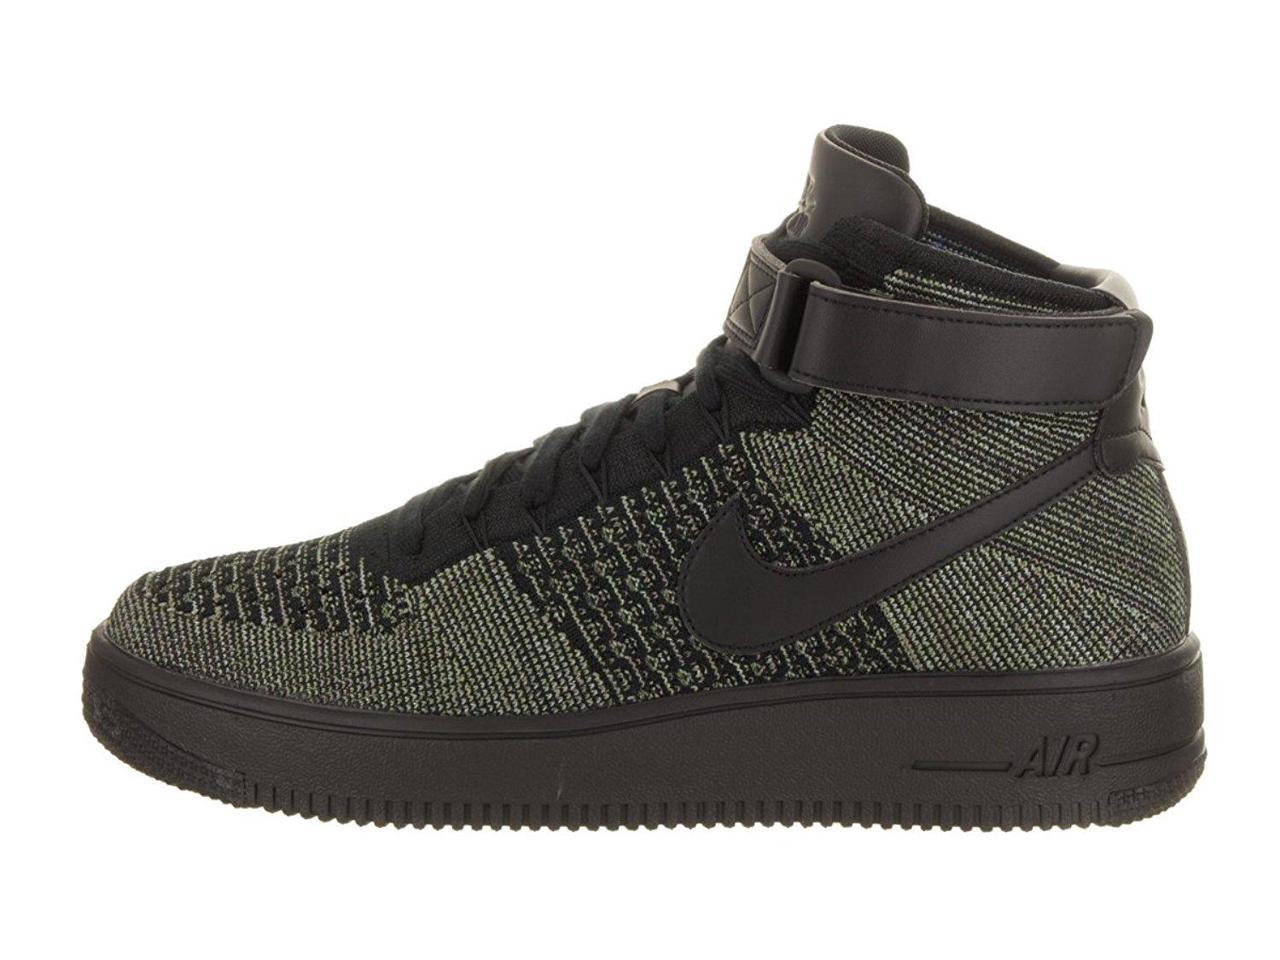 Nike Men's AF1 Mid Ultra Flyknit Mid AF1 Basketball Shoes-Black/Green-9.5 c9cd6a